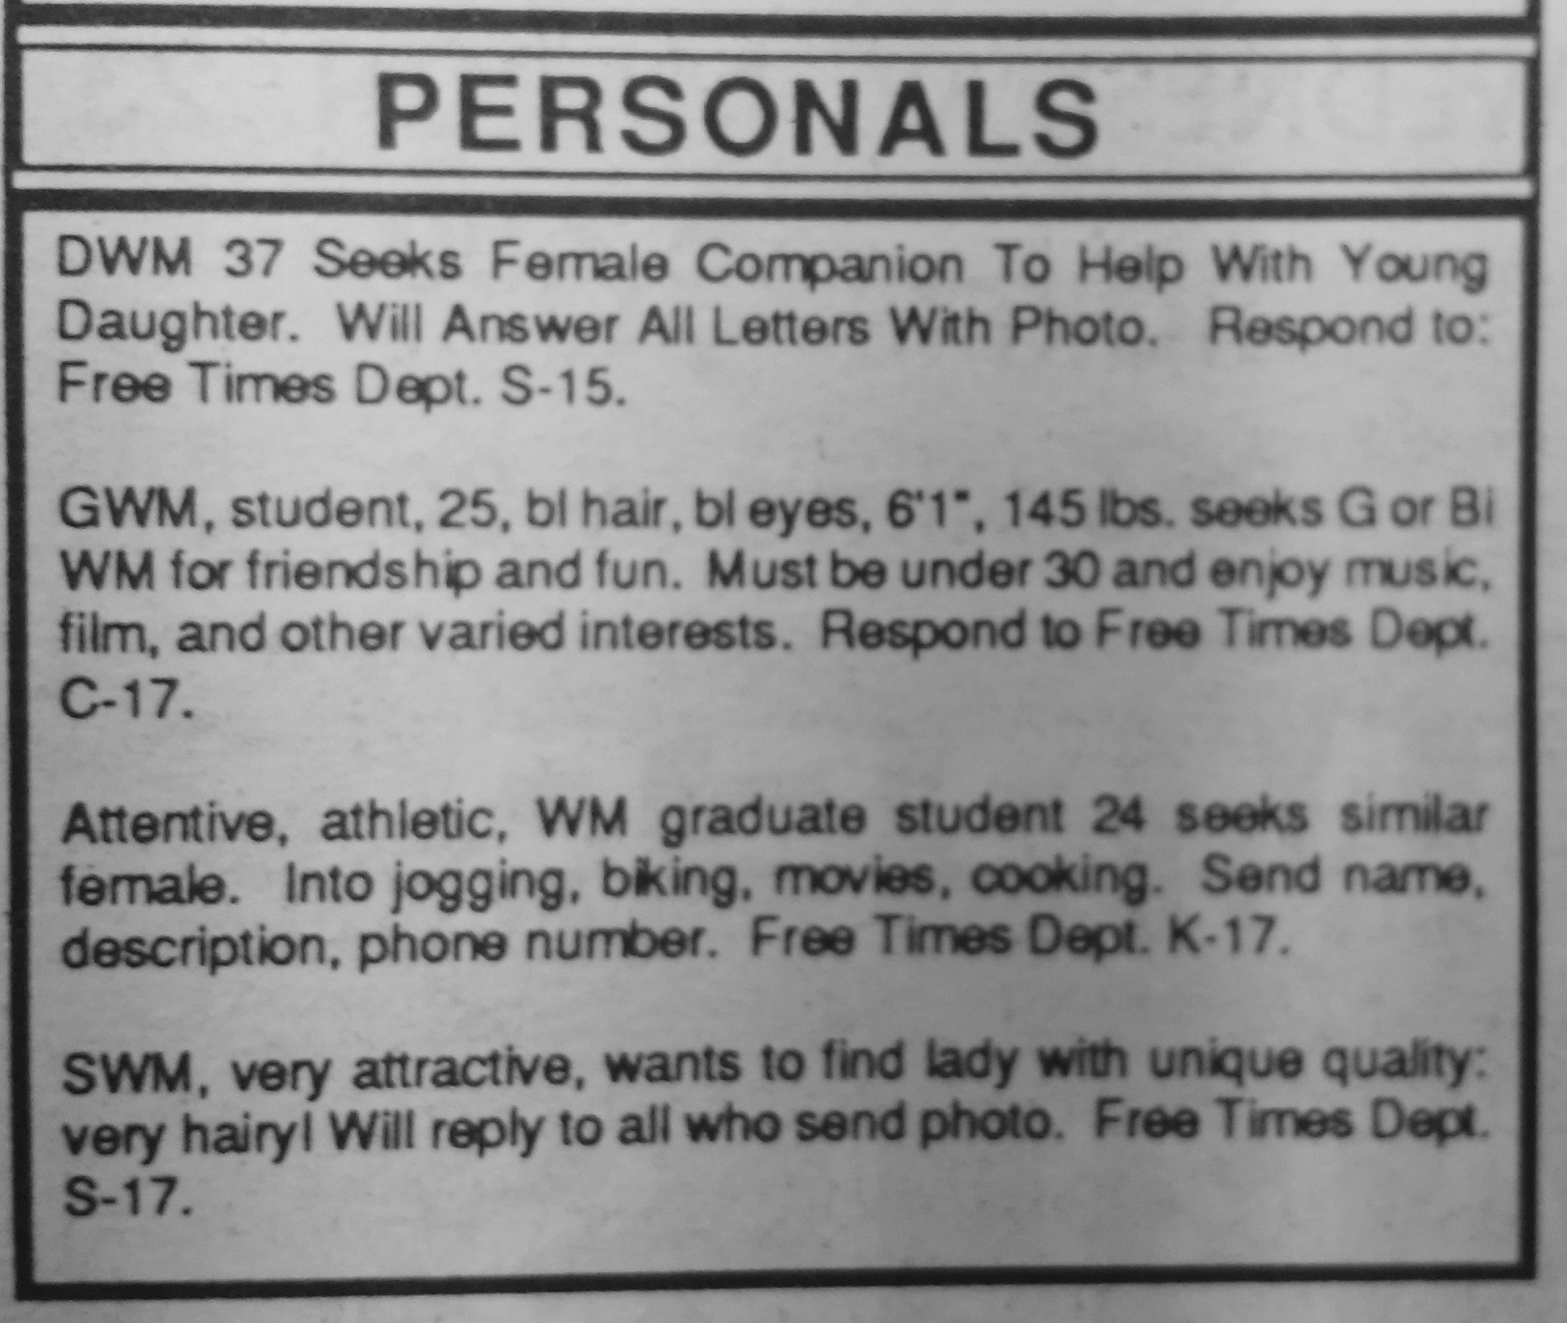 Gay abbreviations in personal ads